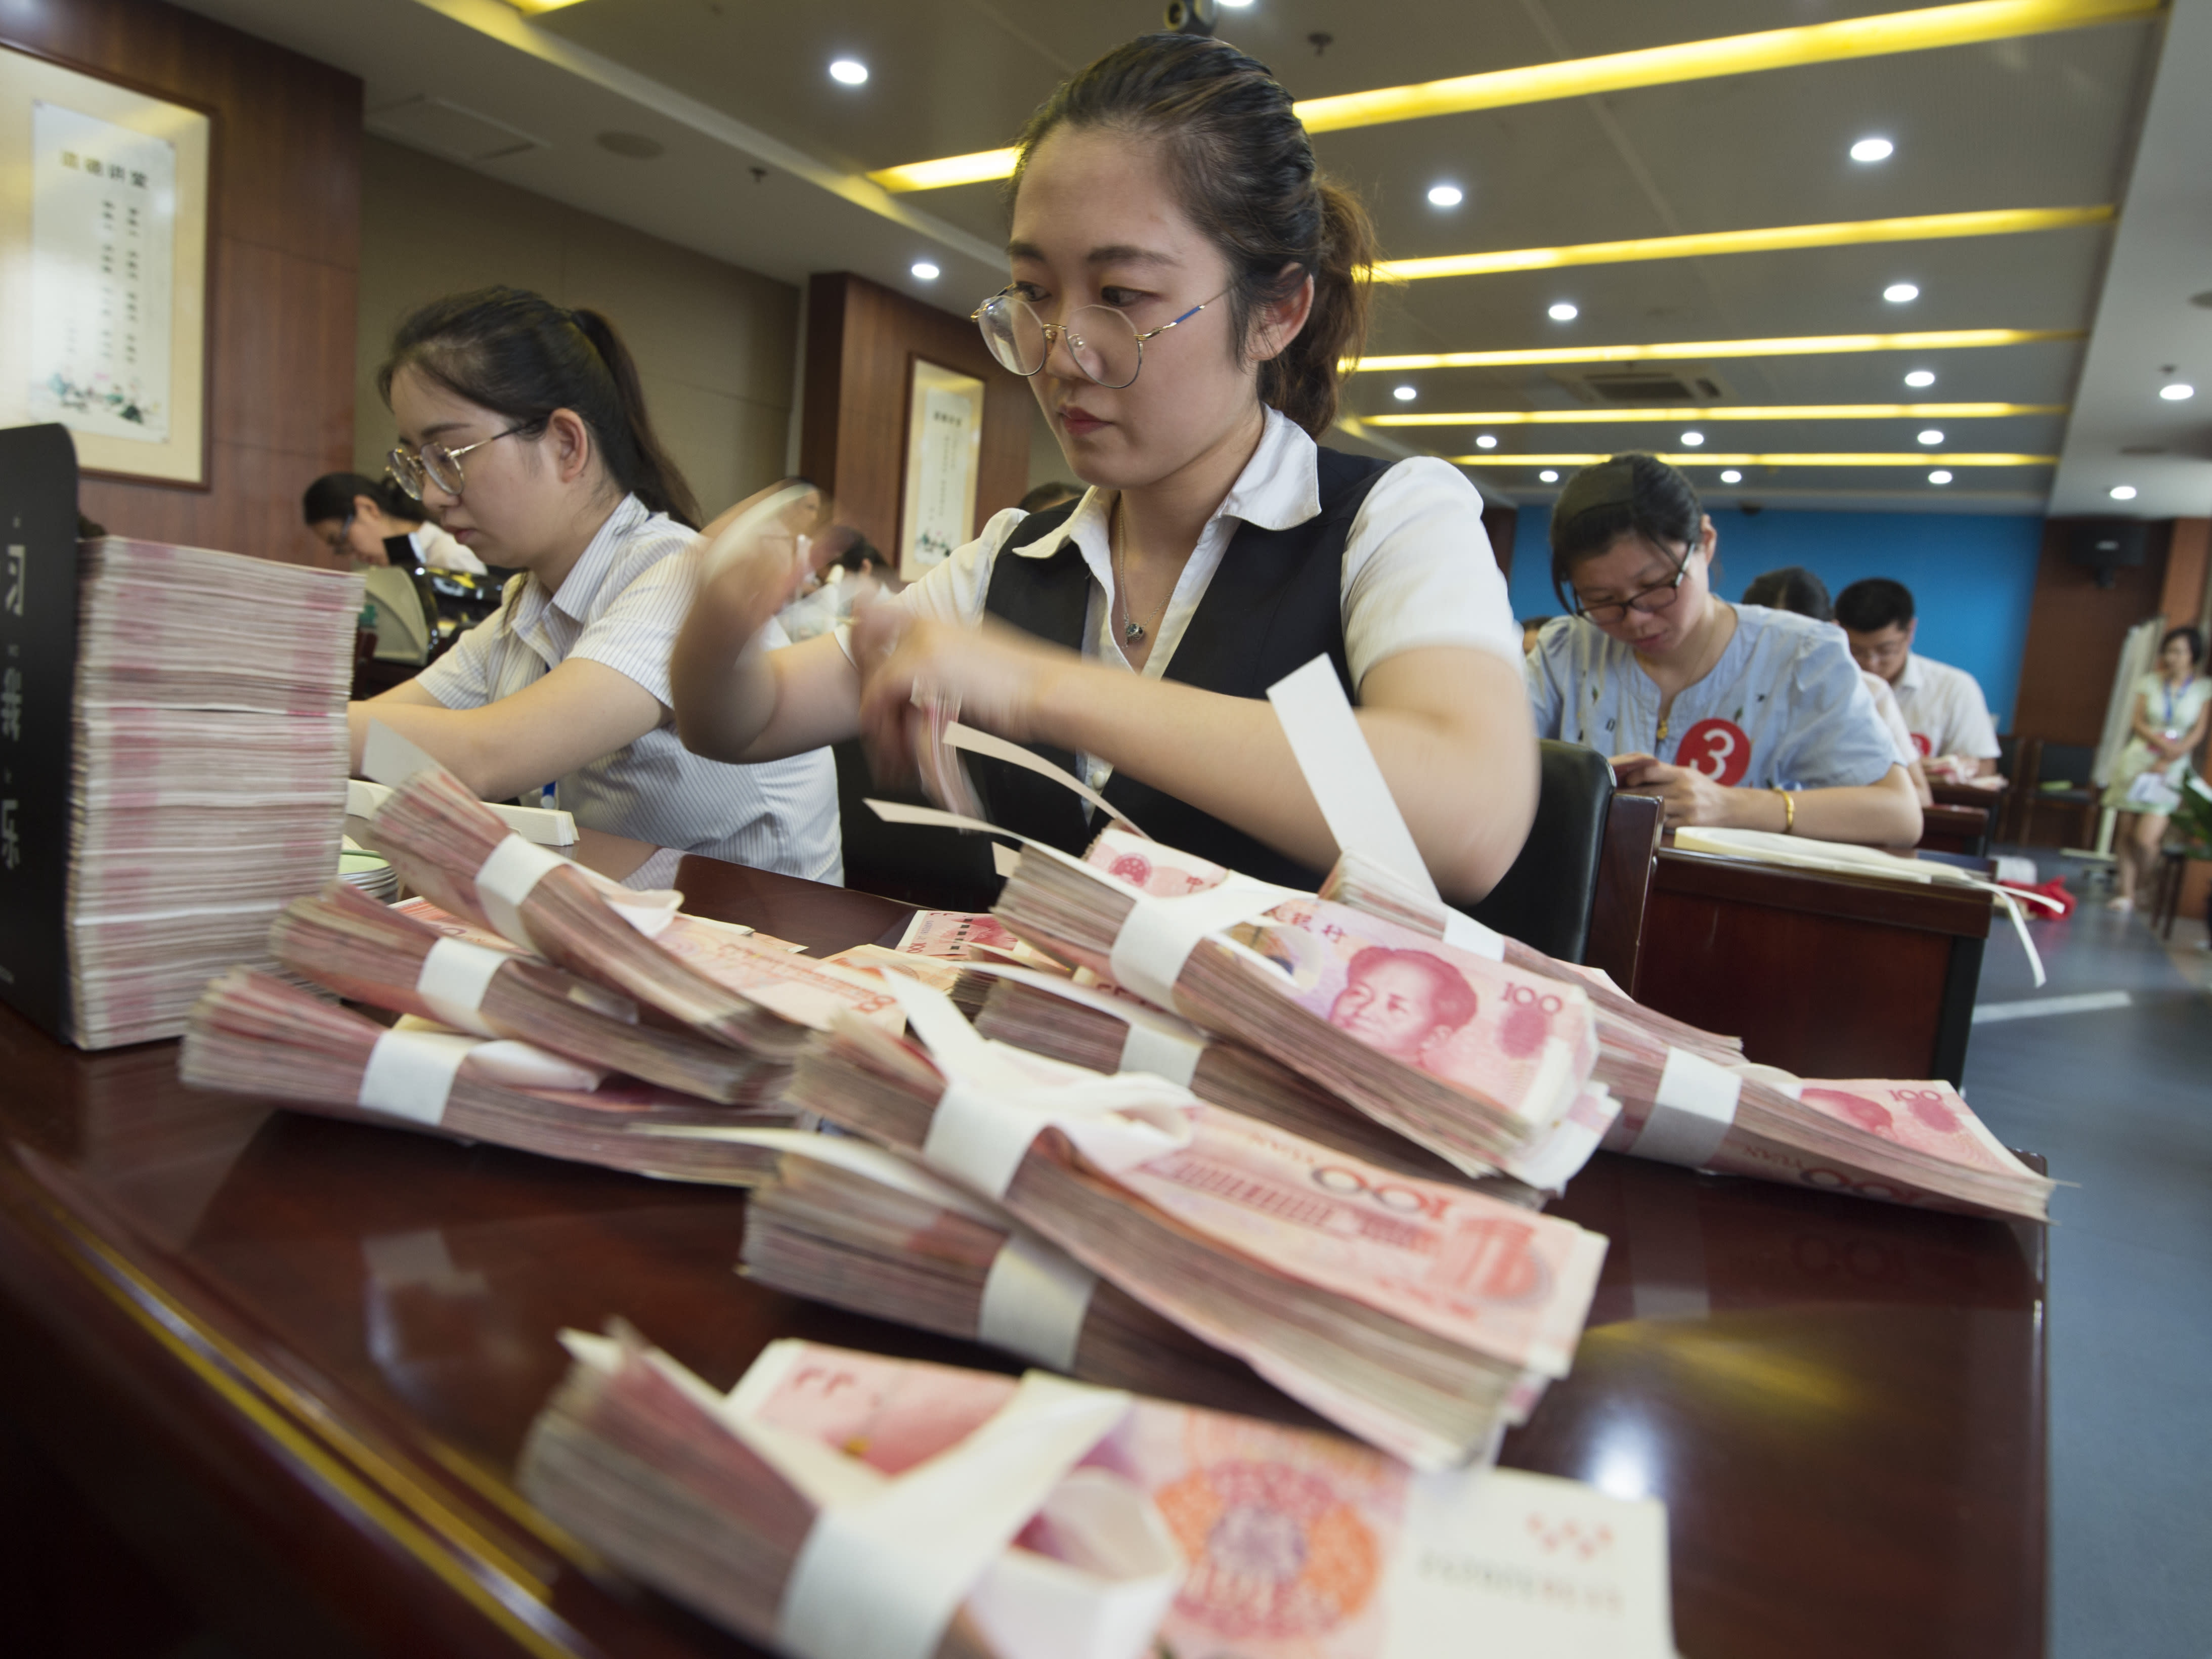 China is destroying cash in a bid to stem the spread of coronavirus